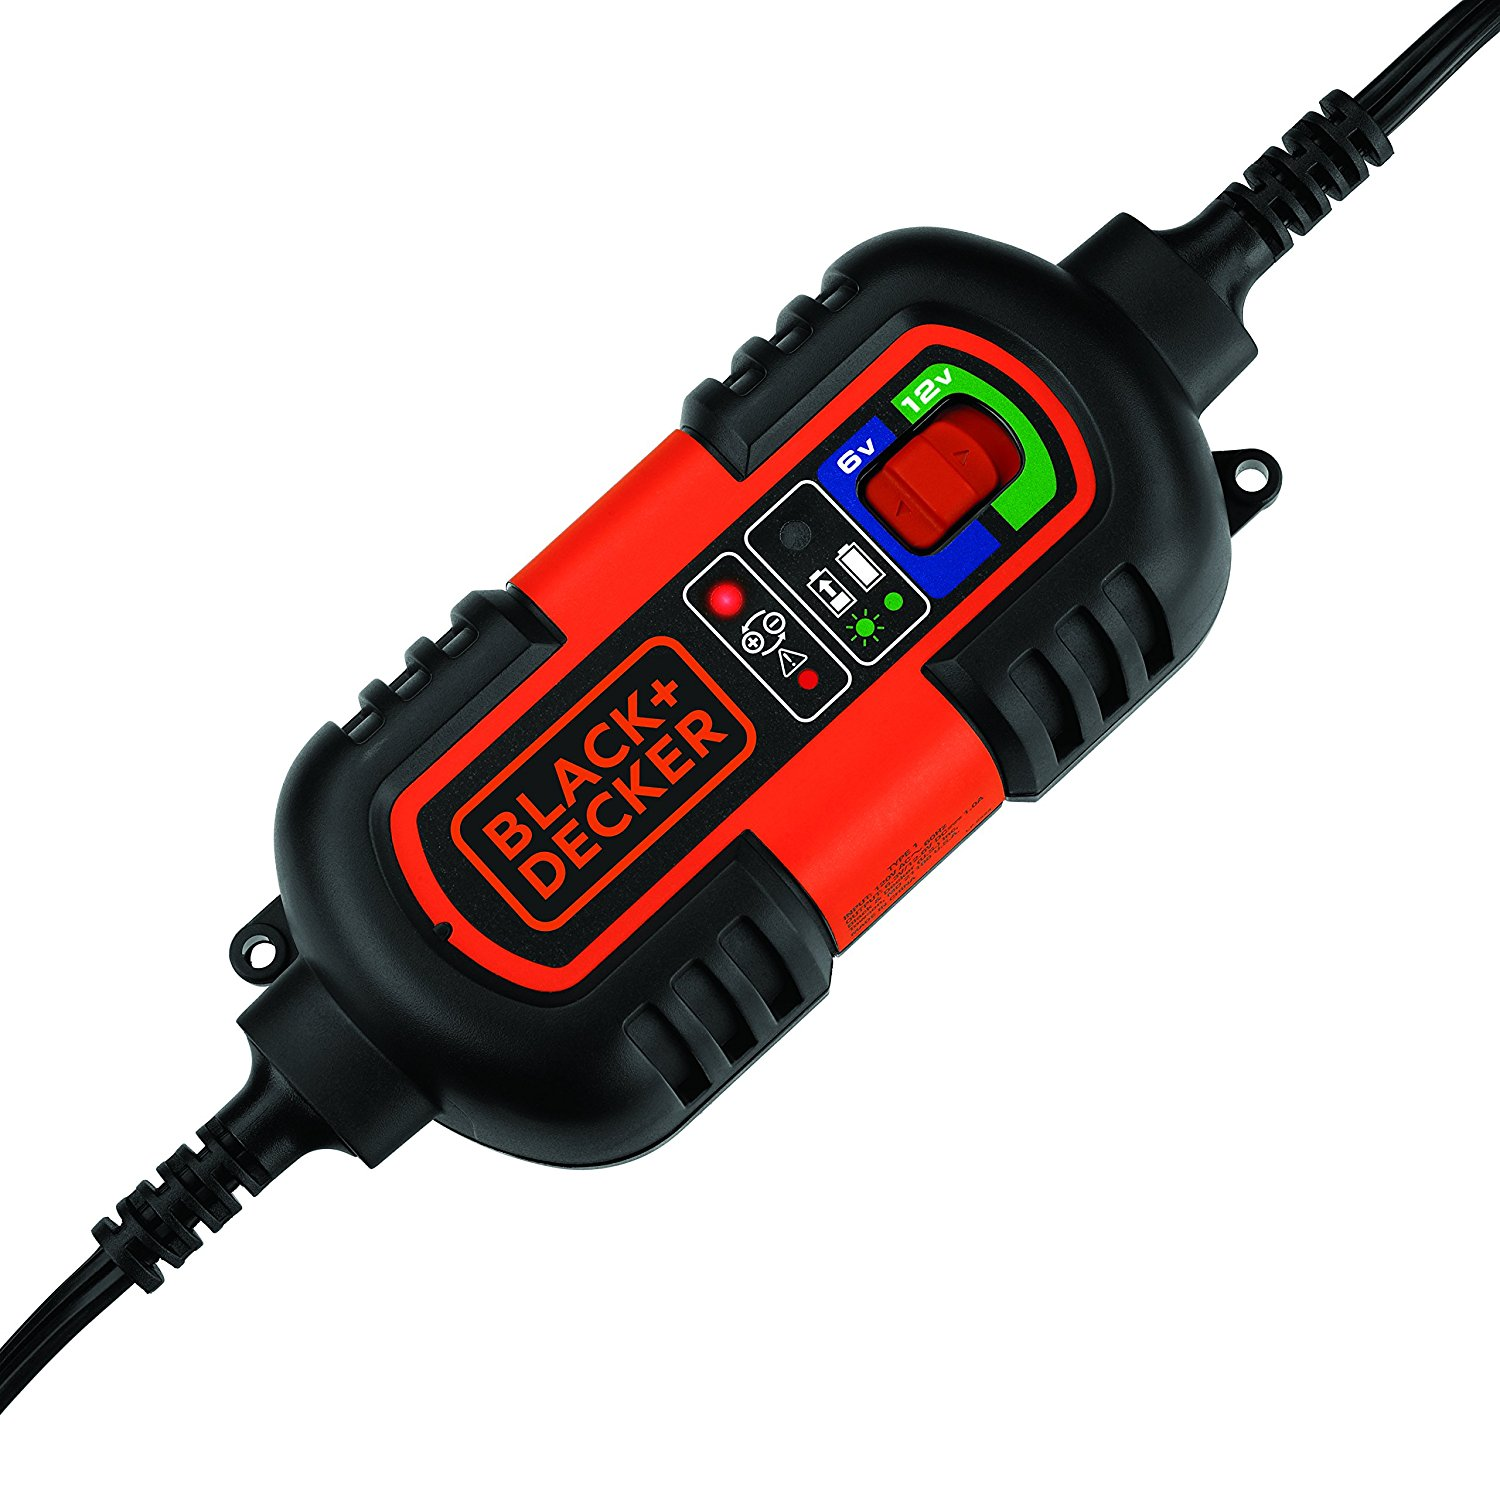 Black & Decker Battery Maintainer / Charger